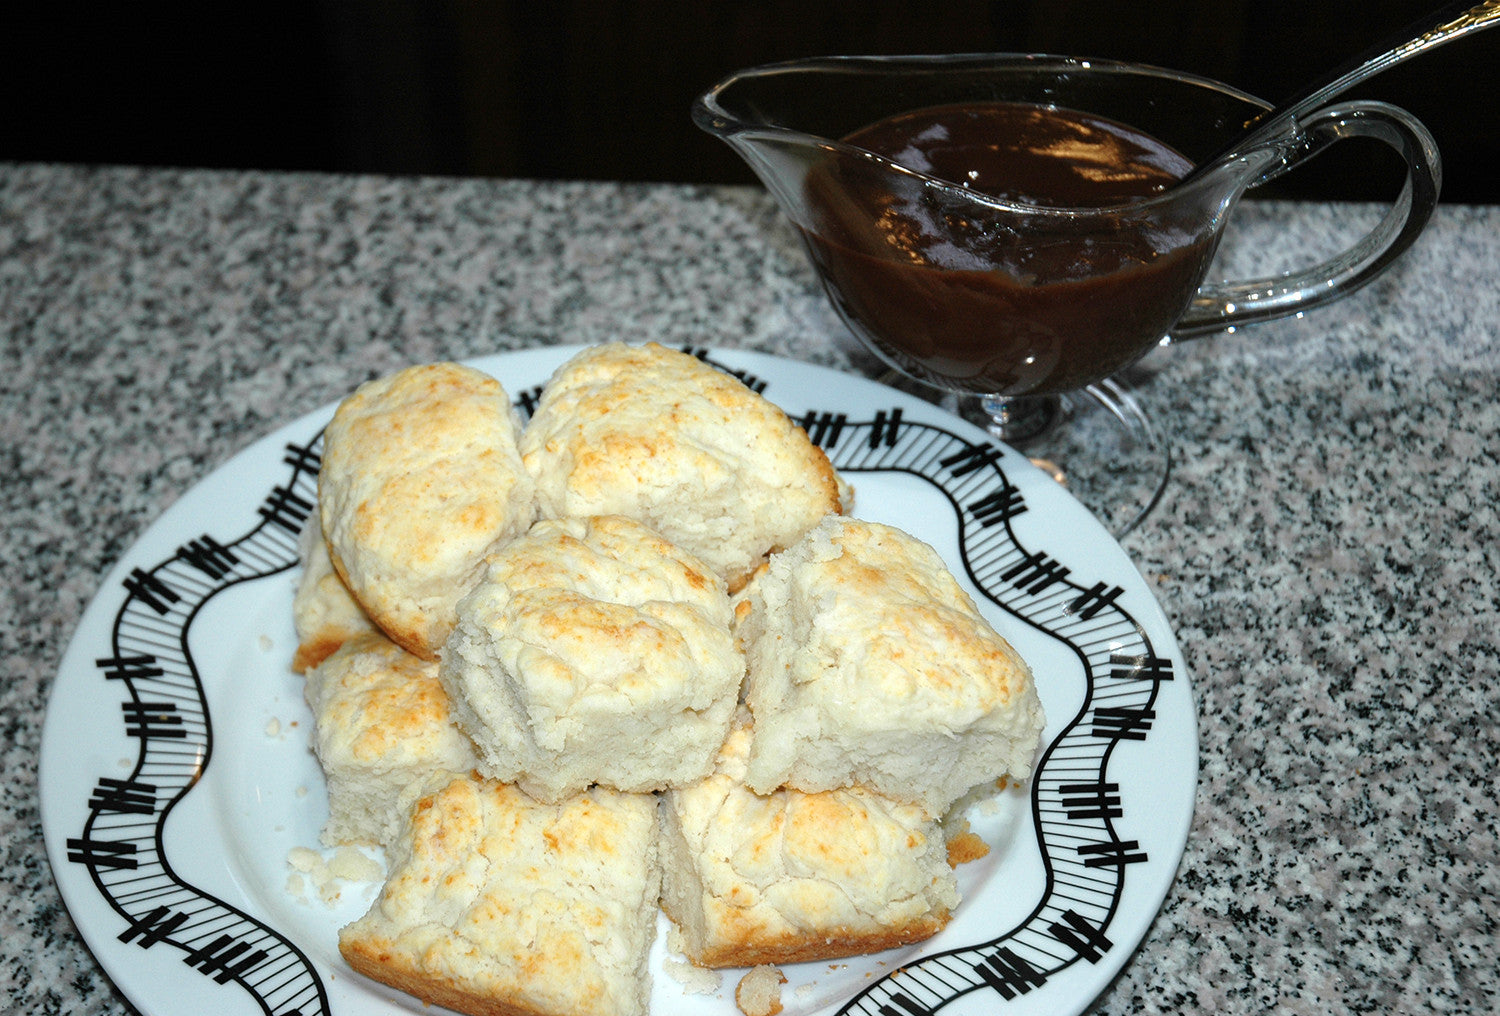 Meeting Isaac Hayes - Angel Biscuits with Chocolate Gravy